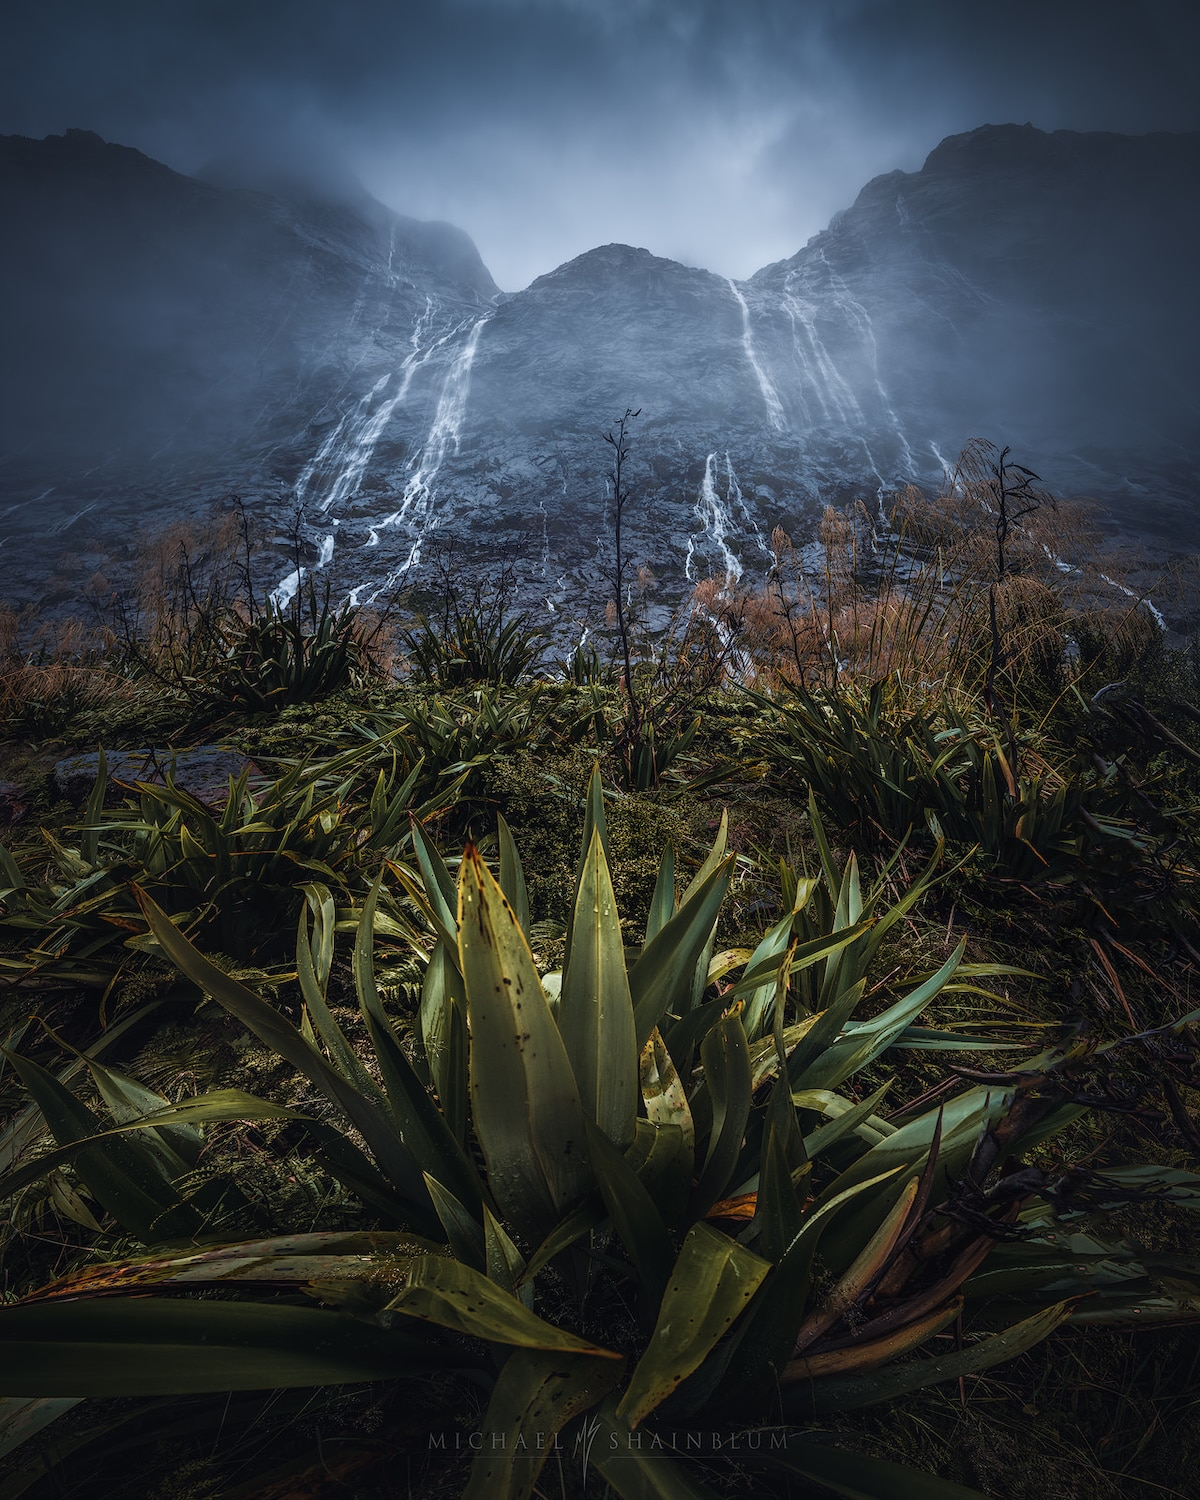 Milford Sound Waterfall in New Zealand by Michael Shainblum